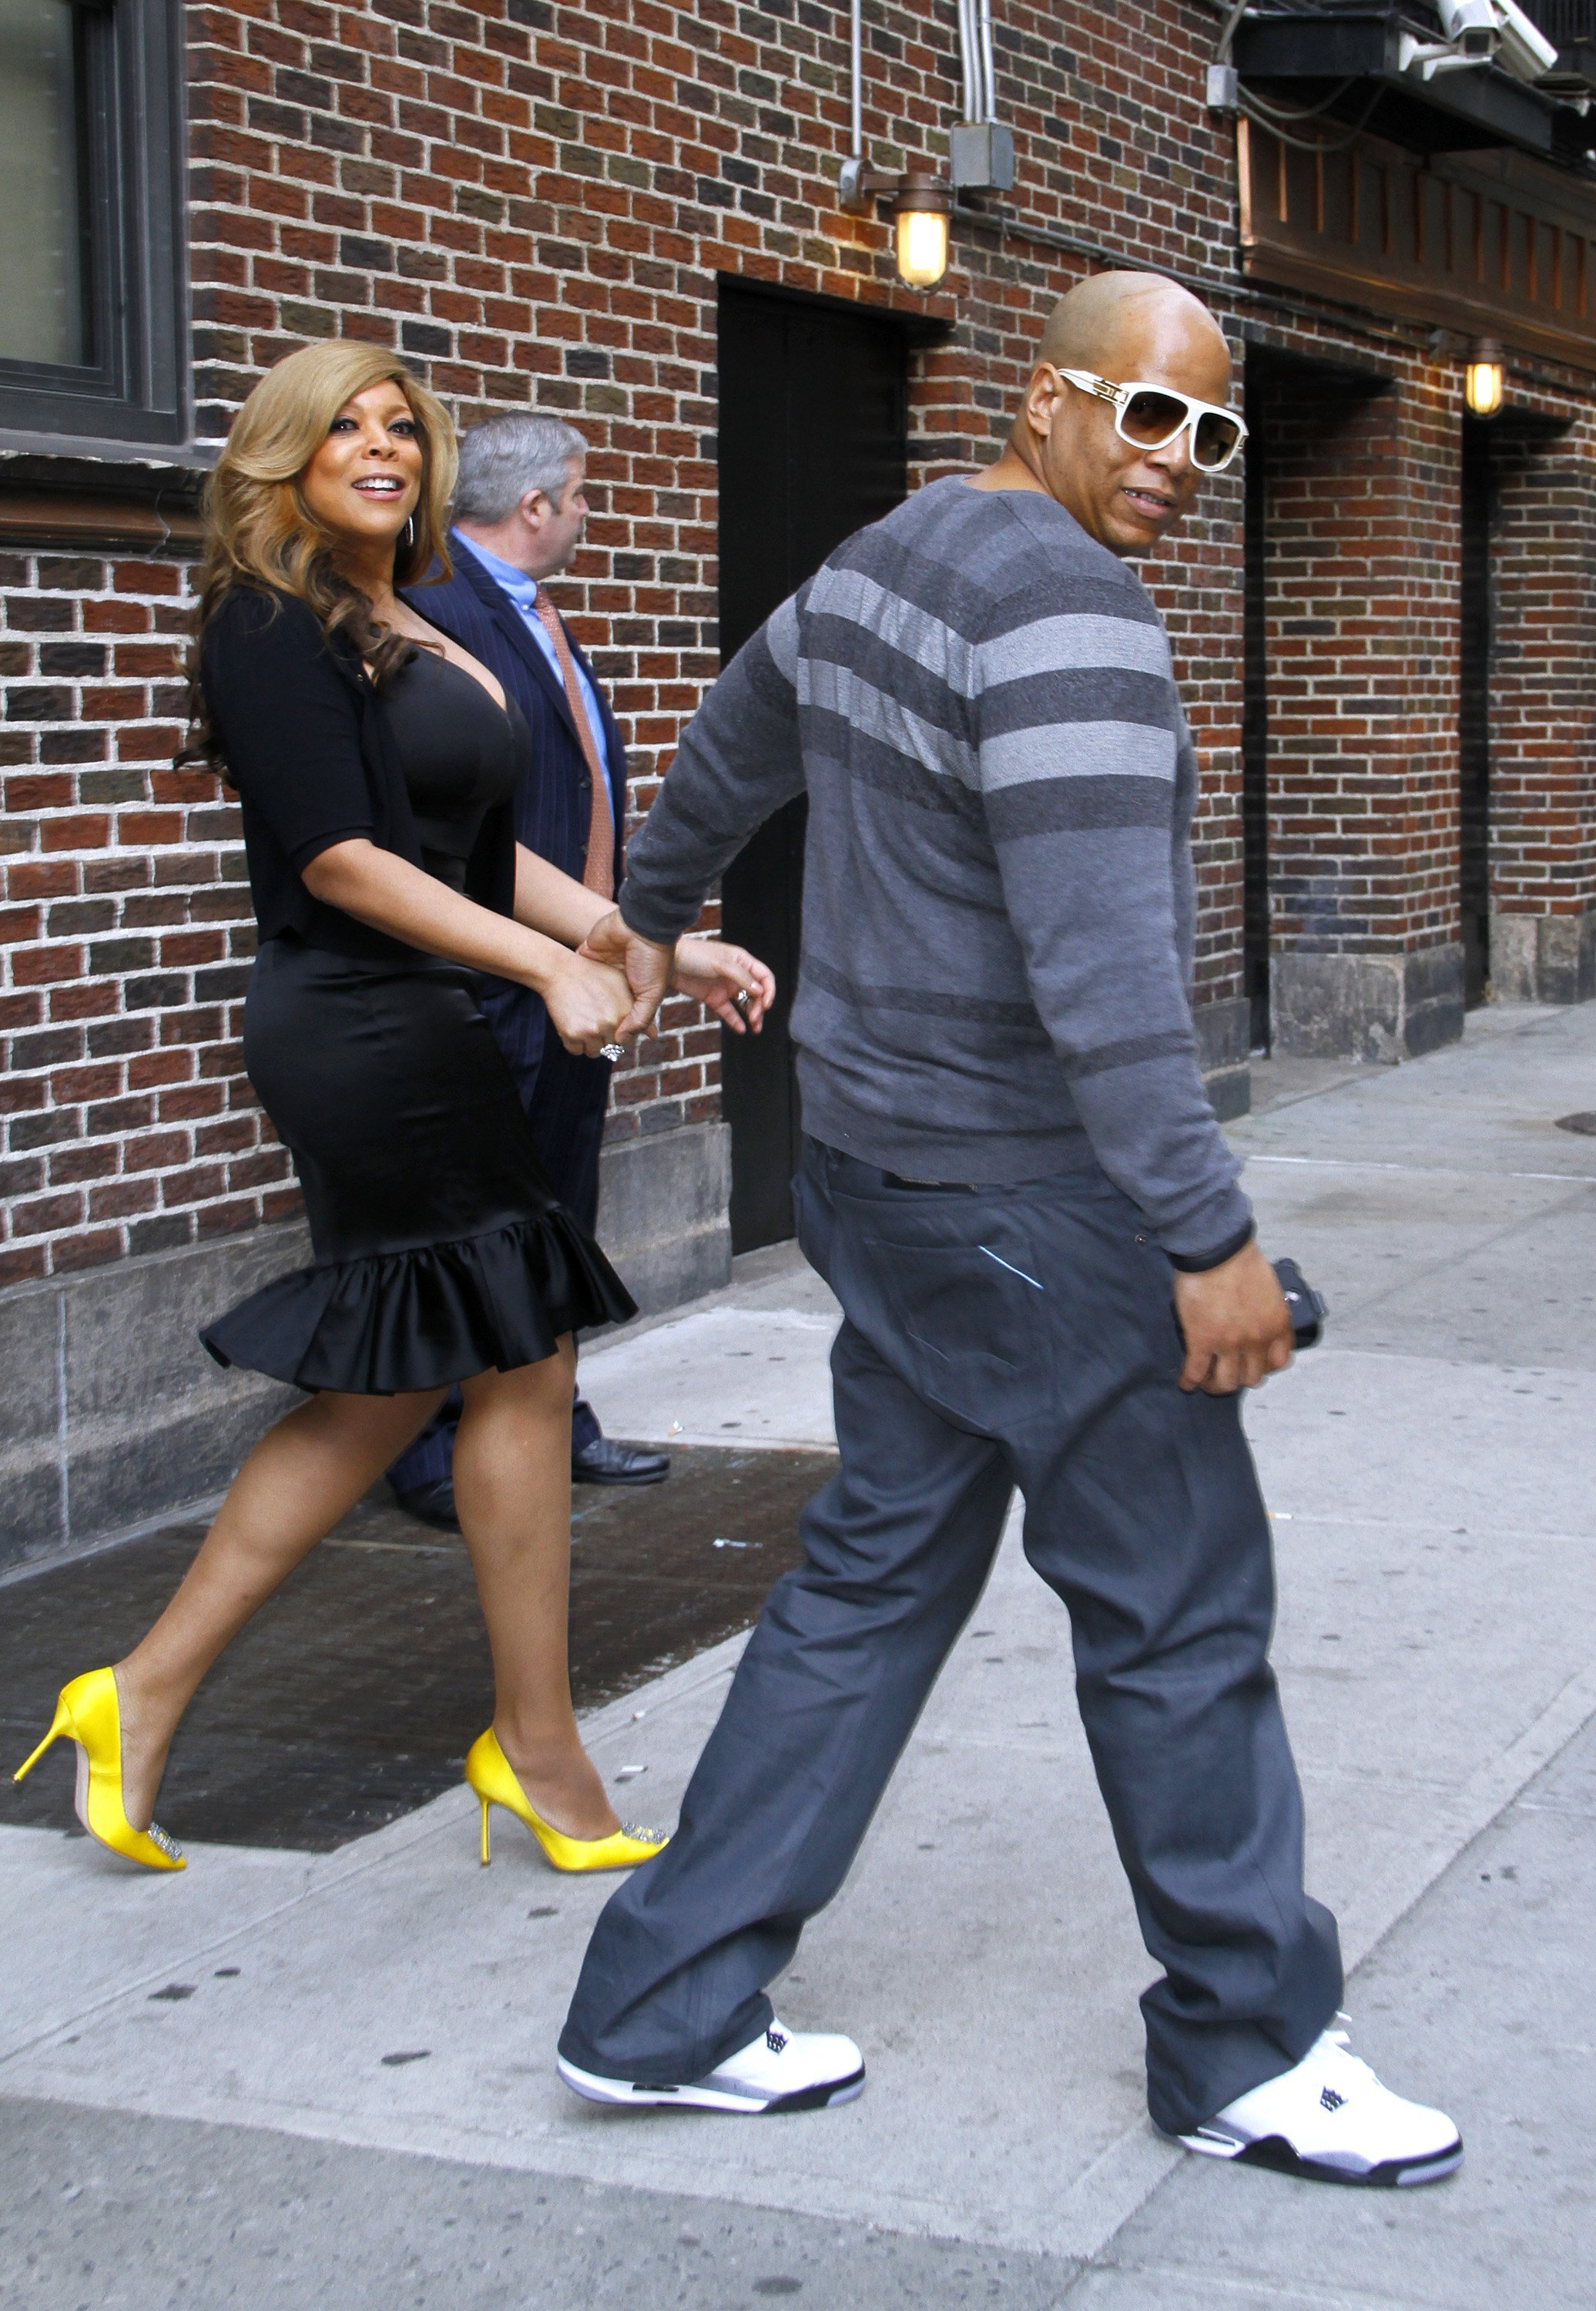 Wendy Williams & Kevin Hunter in New York City am 24. April 2012. | Quelle: Getty Images